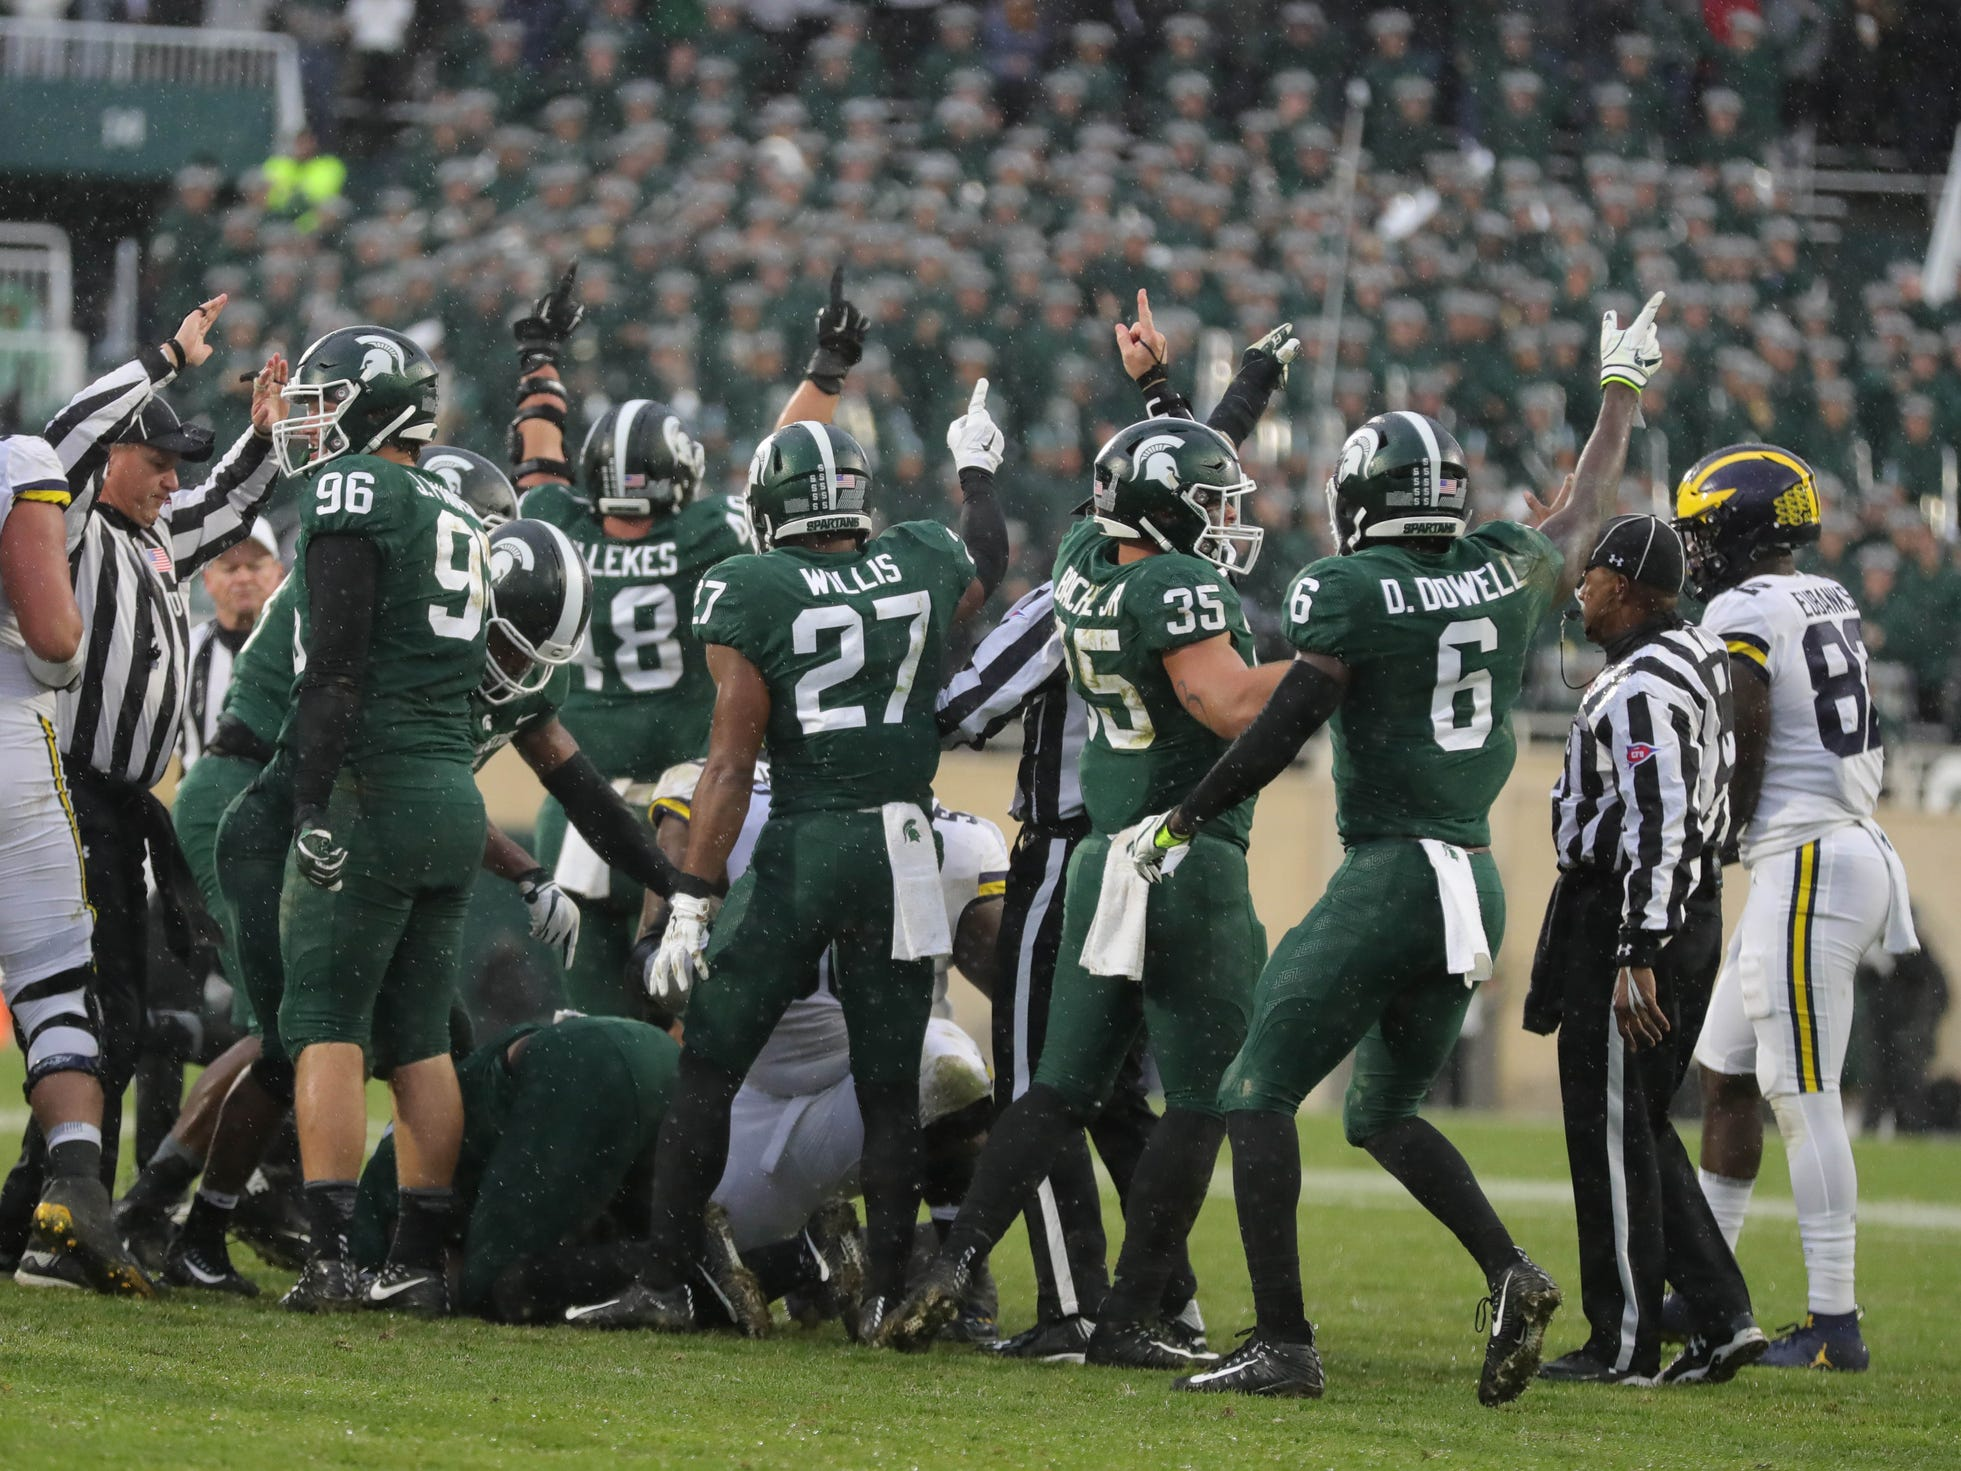 Michigan State celebrates after recovering a Michigan fumble during the second half Saturday, Oct. 20, 2018 at Spartan Stadium in East Lansing.